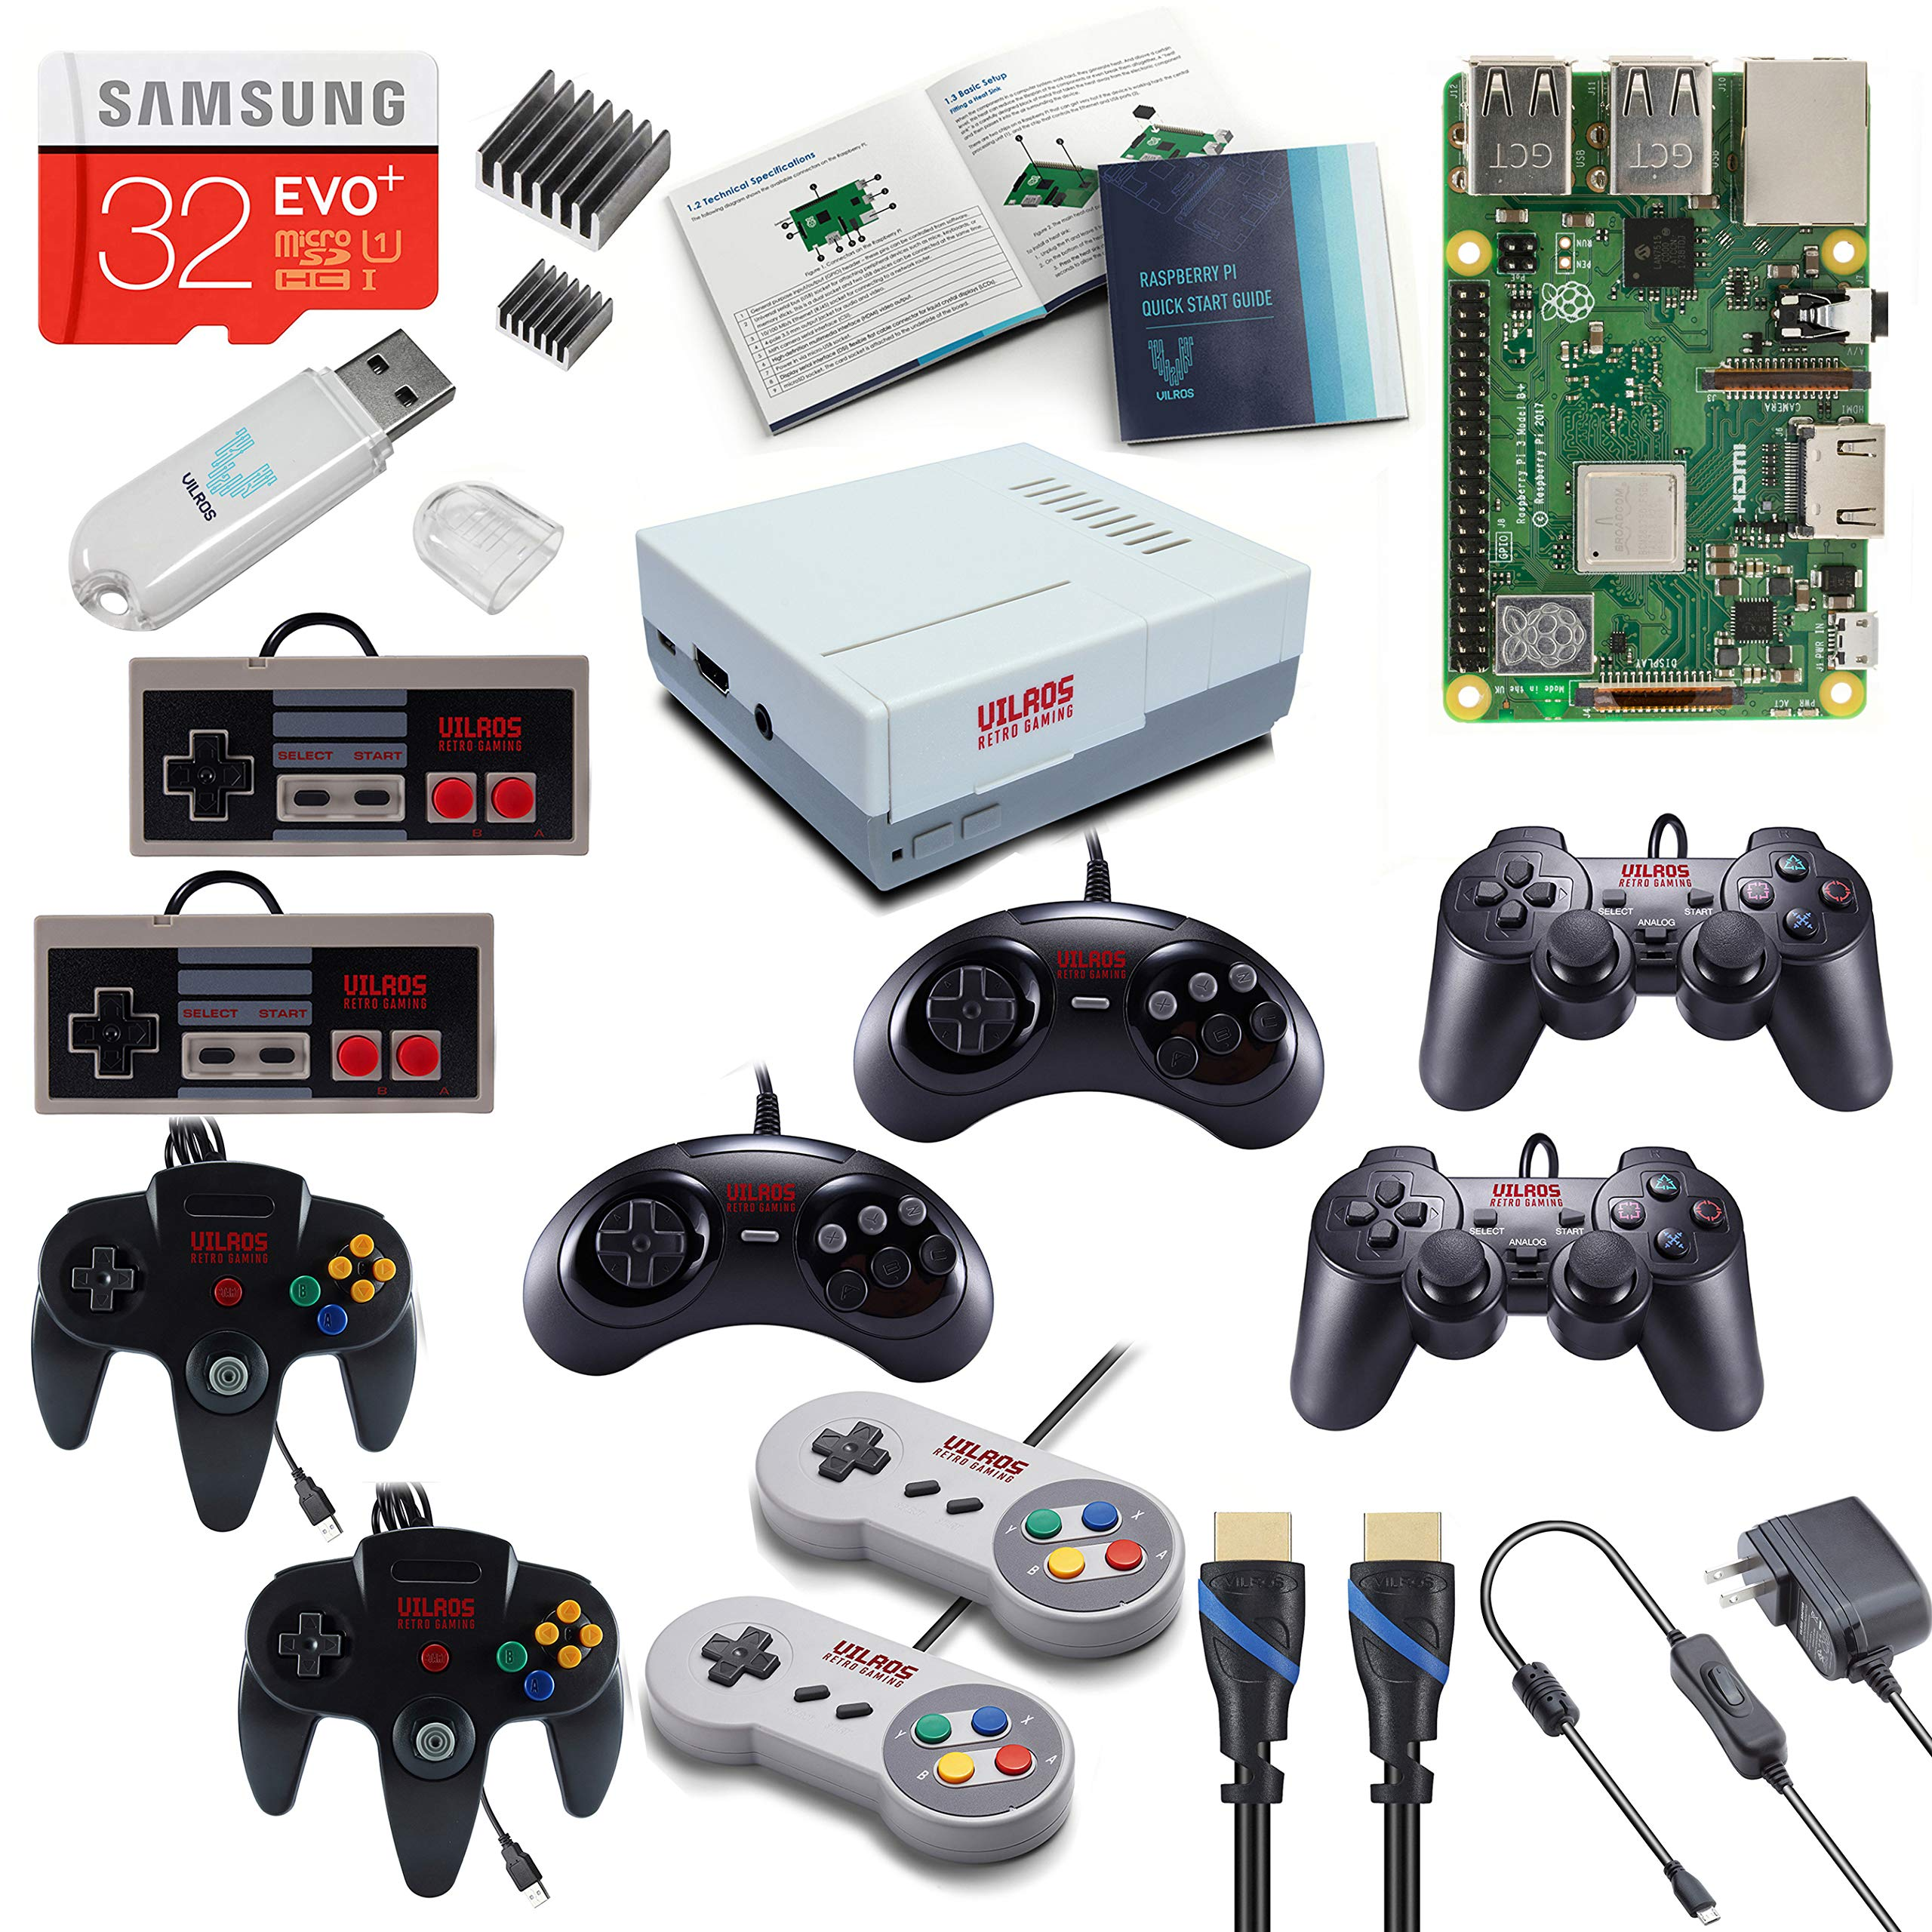 Vilros Raspberry Pi 3 Model B+ (B Plus) Retro Arcade Gaming Kit with Multi Retro Gaming Controller Set-Includes: 2 Each of NES, SNES, N64, PS2 & GENASIS Controllers